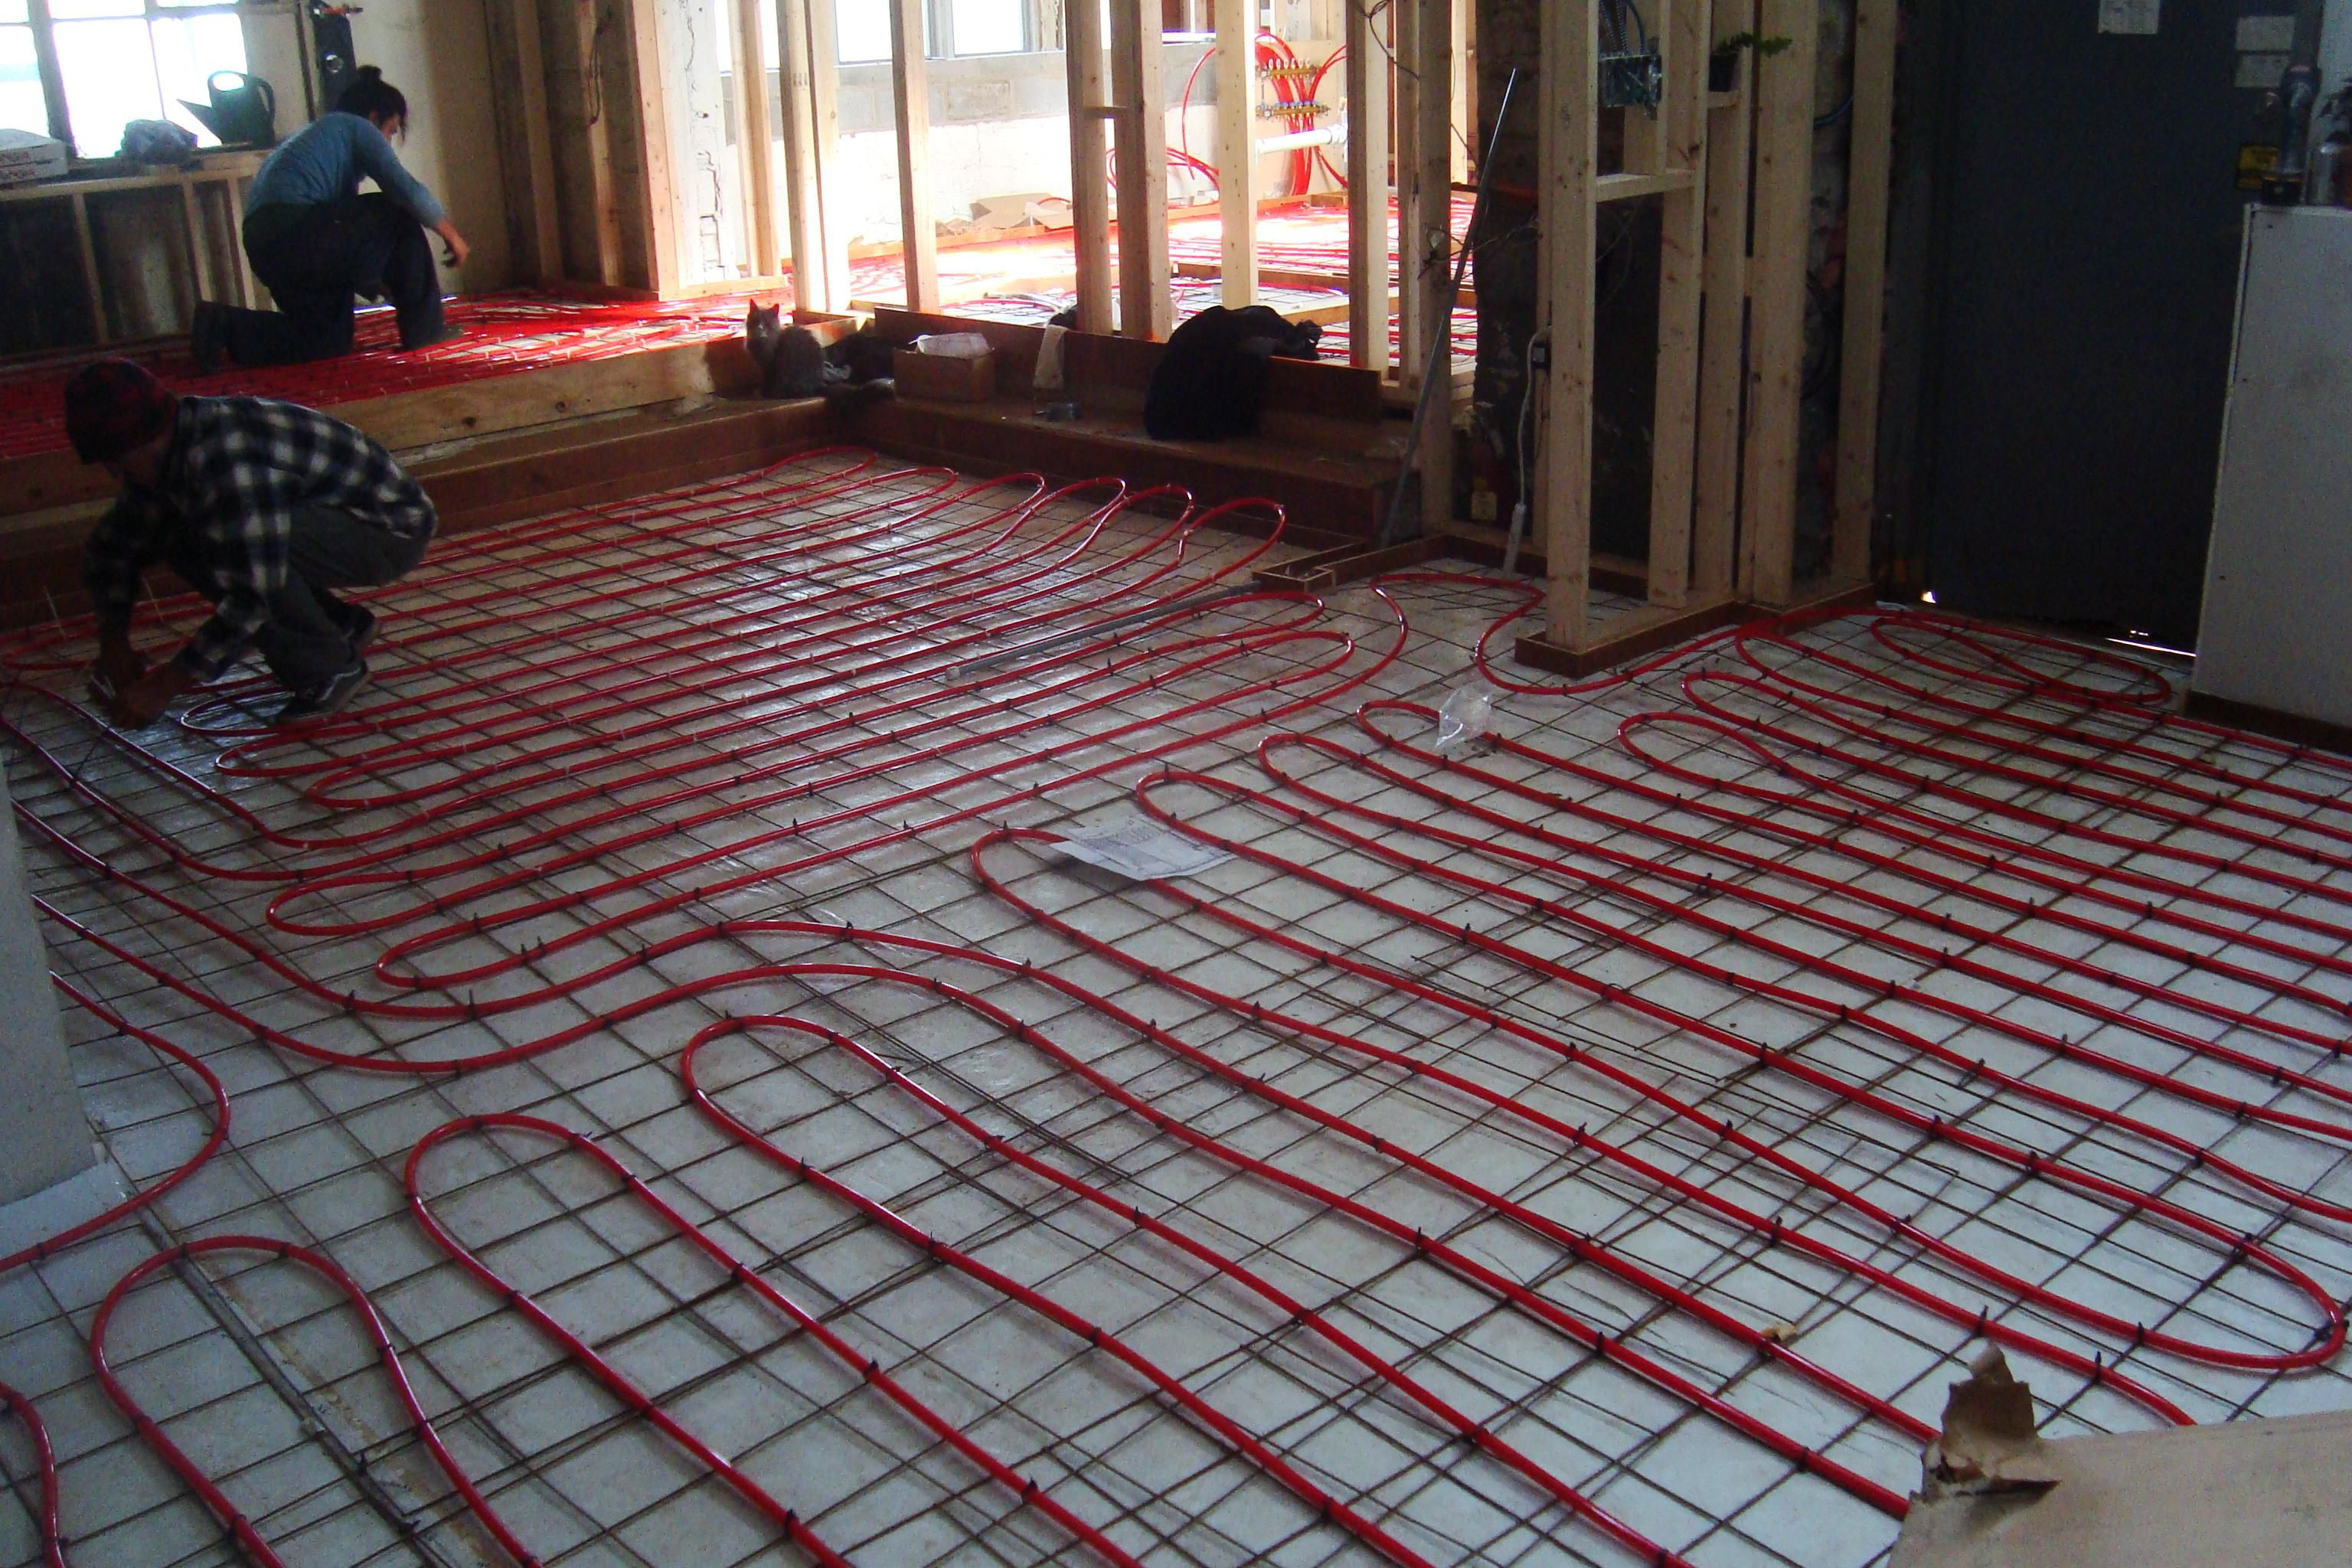 hwd 15 hardwood floor underlayment of electric radiant floor heating the basics within 5216244513 abe93aacd8 o 56a49ef05f9b58b7d0d7e052